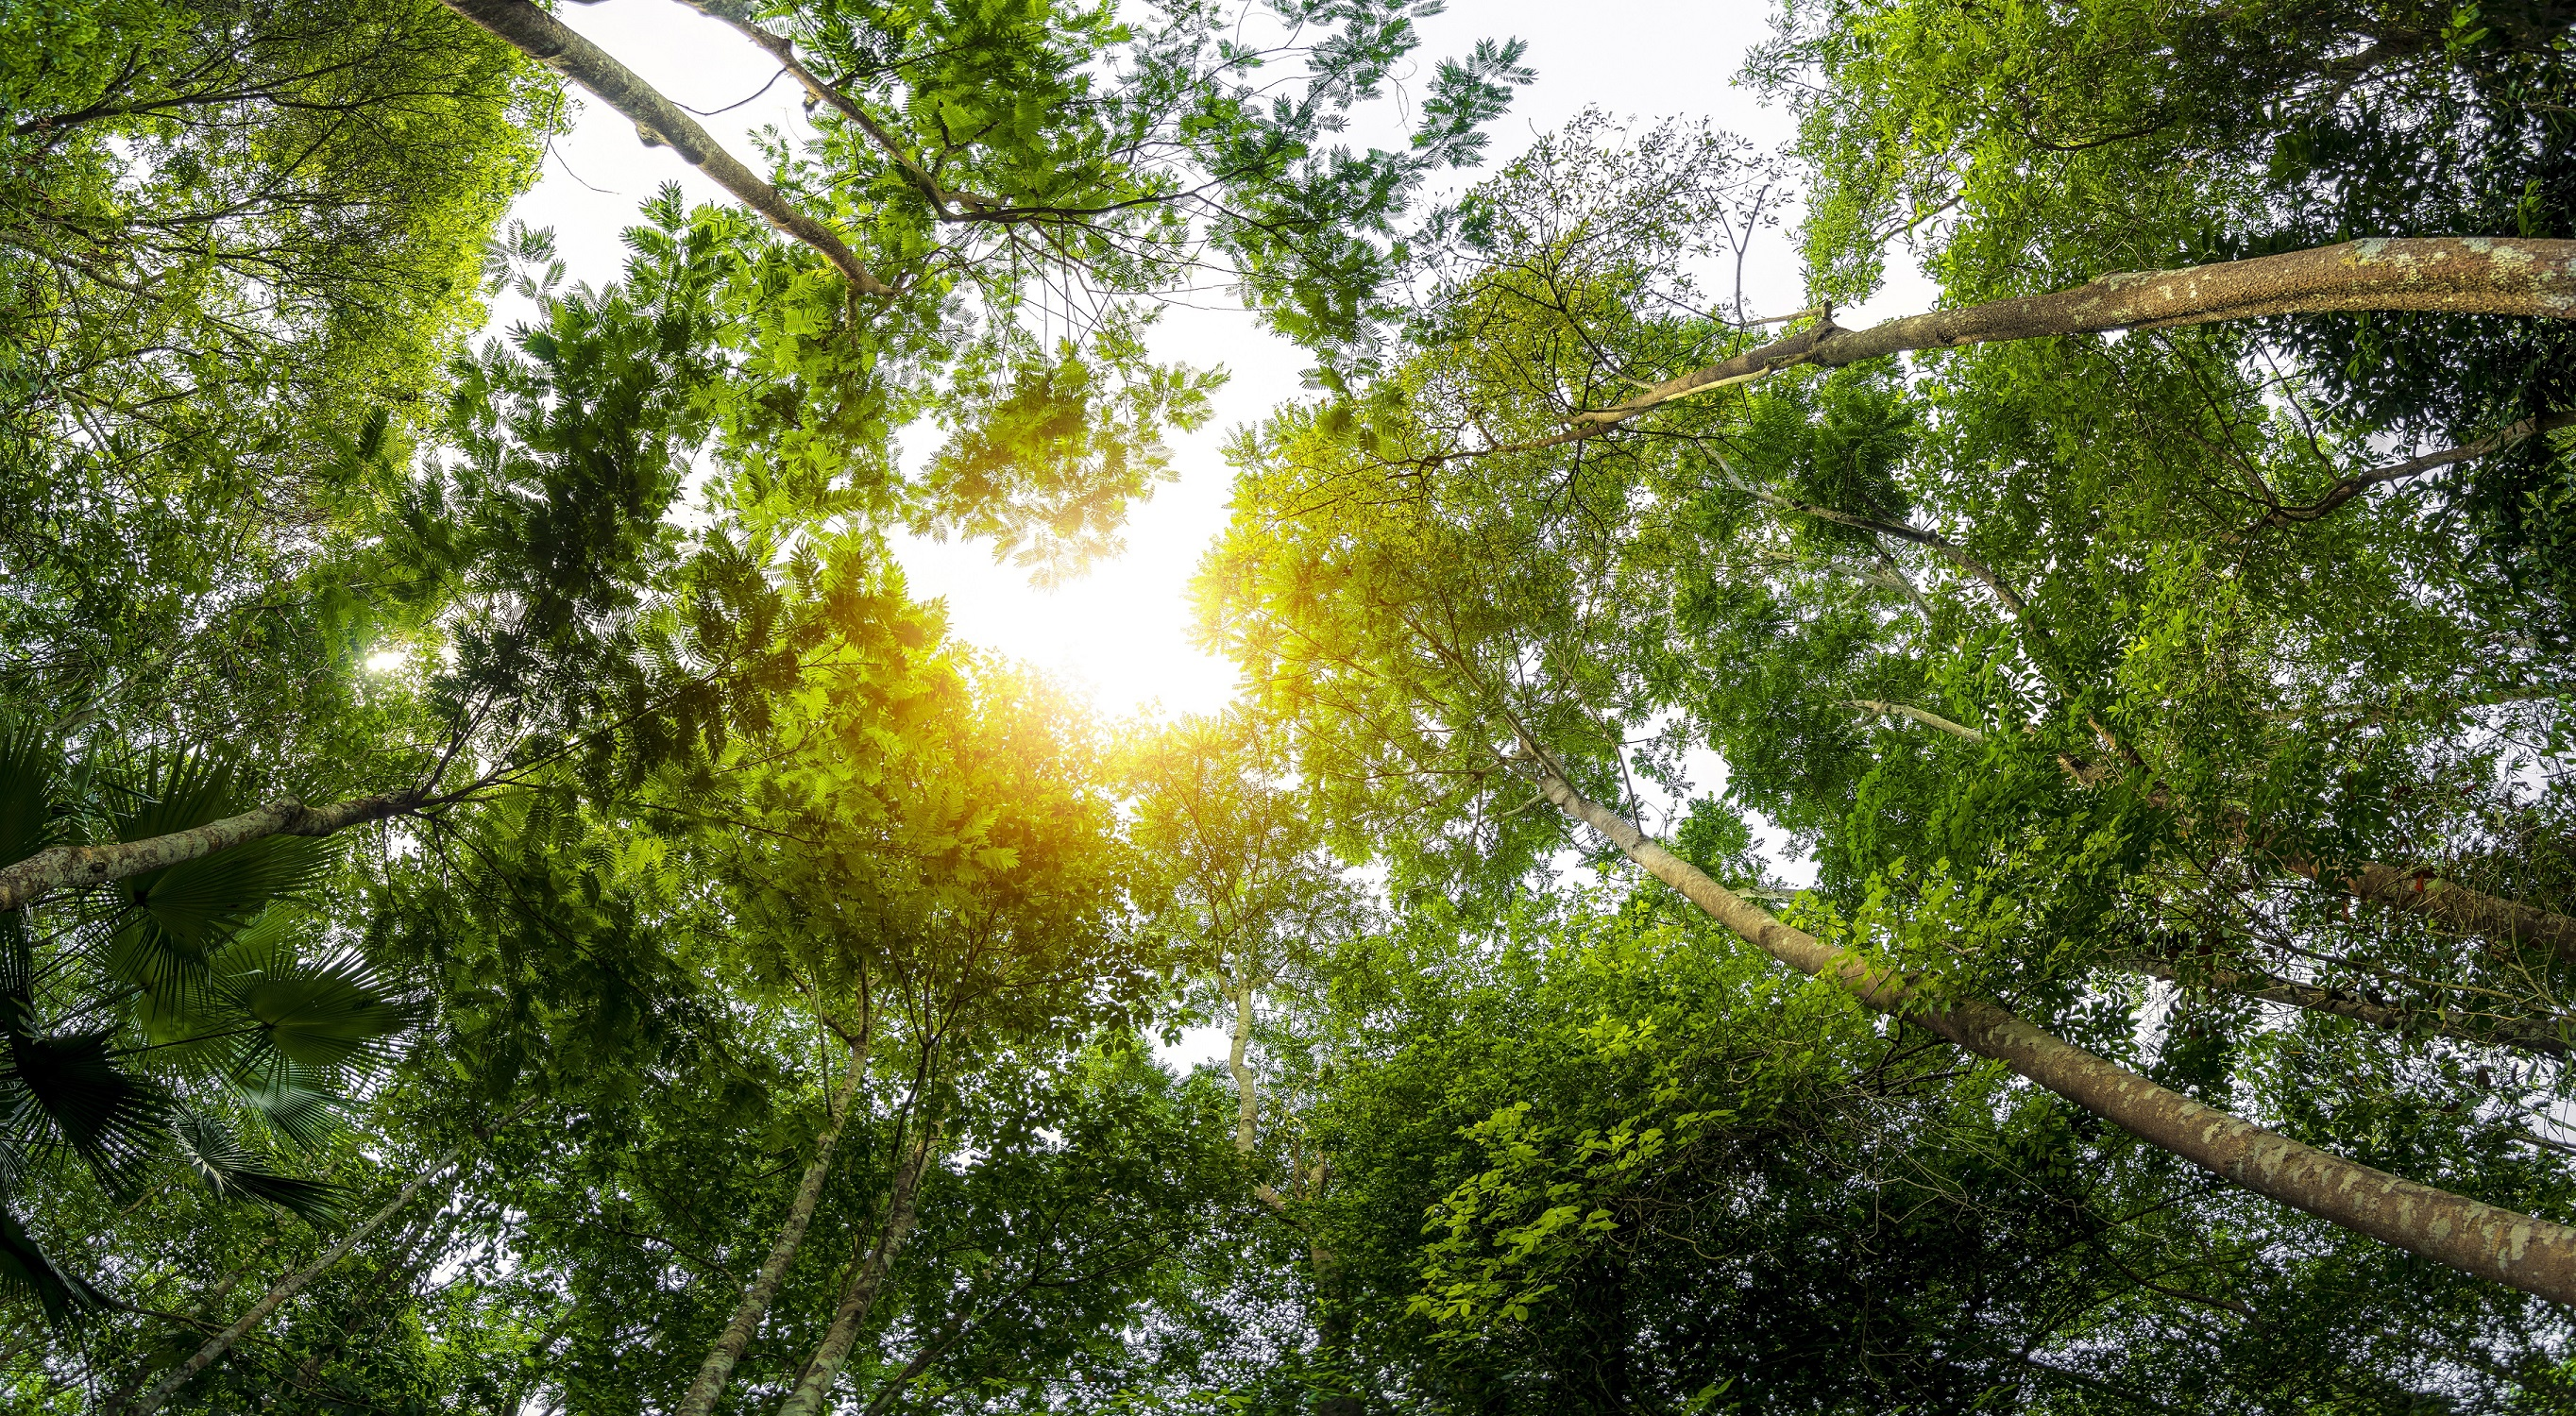 concept-of-earth-protection-day-or-environmental-protection-hands-to-protect-the-growing-forest